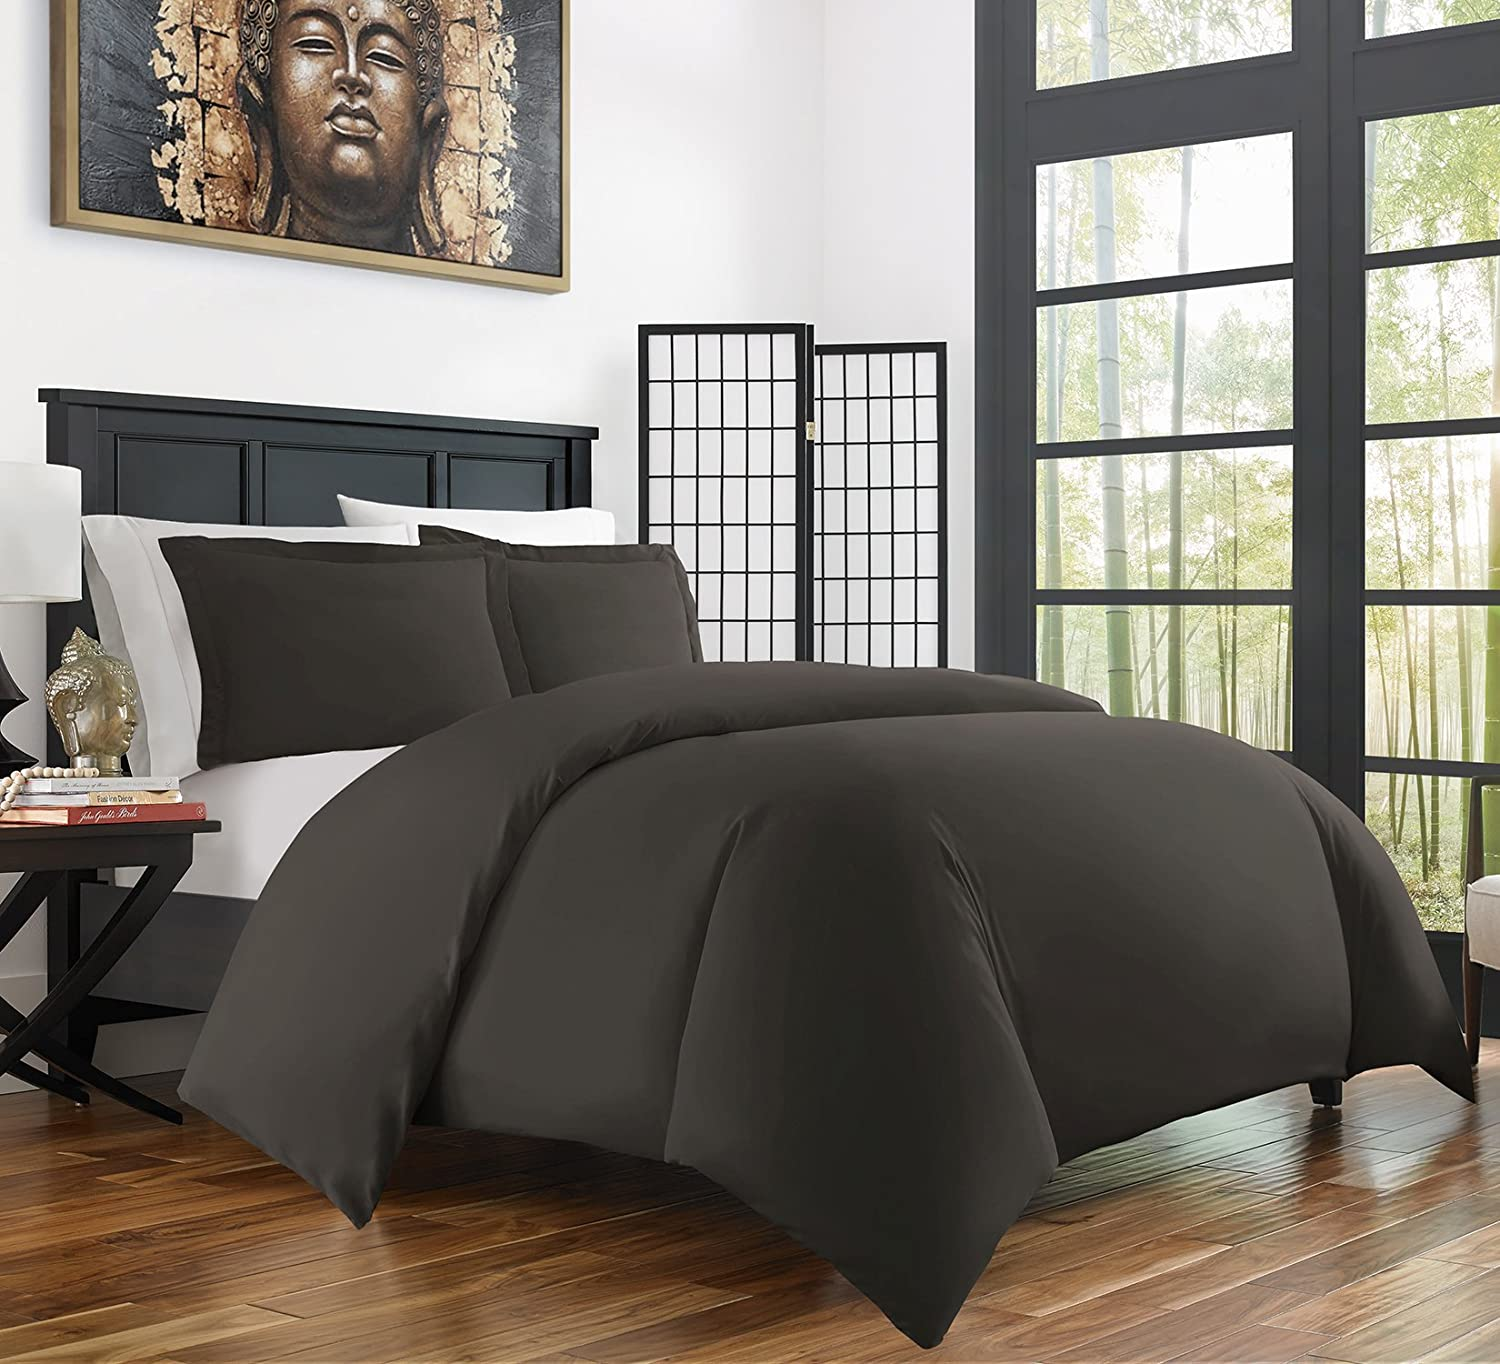 Zen Bamboo Ultra Soft 3-Piece Rayon Derived From Bamboo Duvet Cover Set -Hypoallergenic and Wrinkle Resistant - King/Cal King - Gray